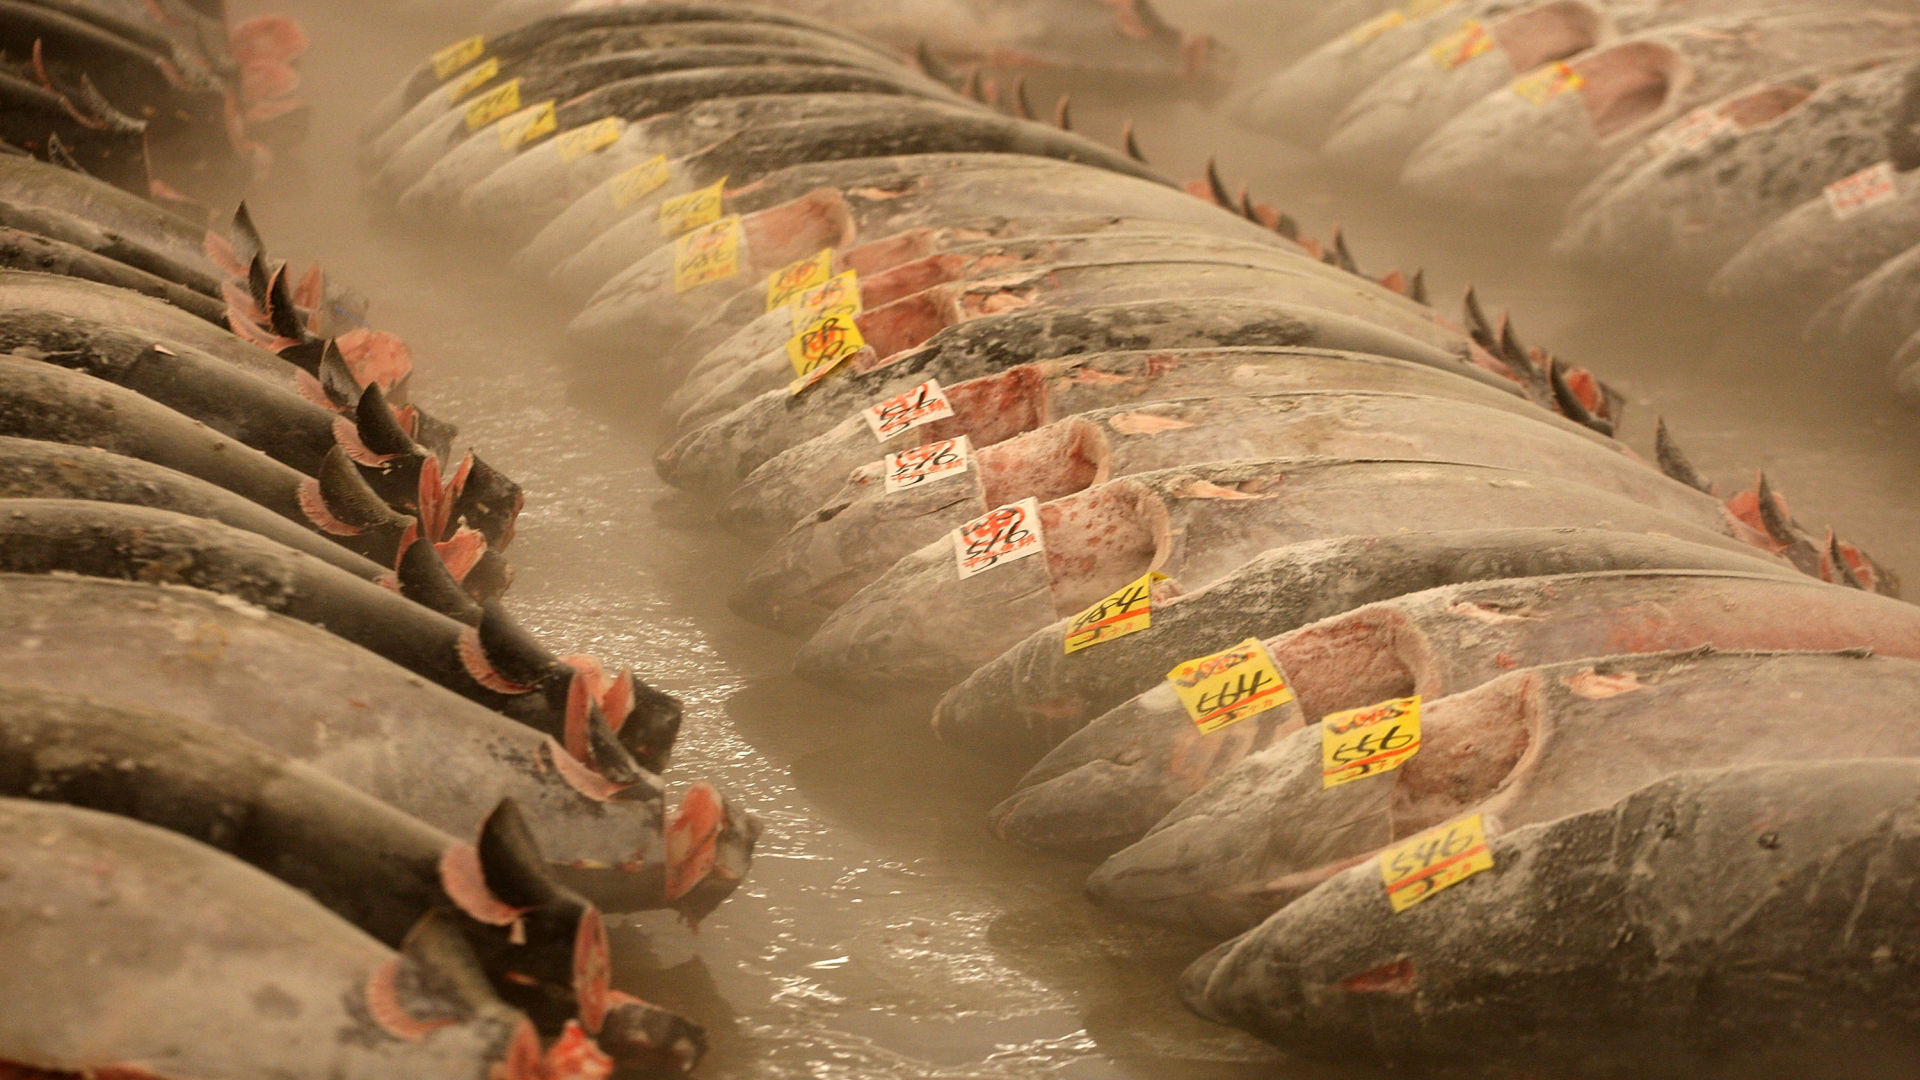 Frozen tuna lies on the ground at the Tsukiji fish market in Tokyo. The FDA recommends freezing raw fish before serving it in sushi as a way to keep it free of parasites. But as a recent outbreak of Salmonella in the U.S. highlights, freezing doesn't guarantee that raw sushi fish is pathogen-free.